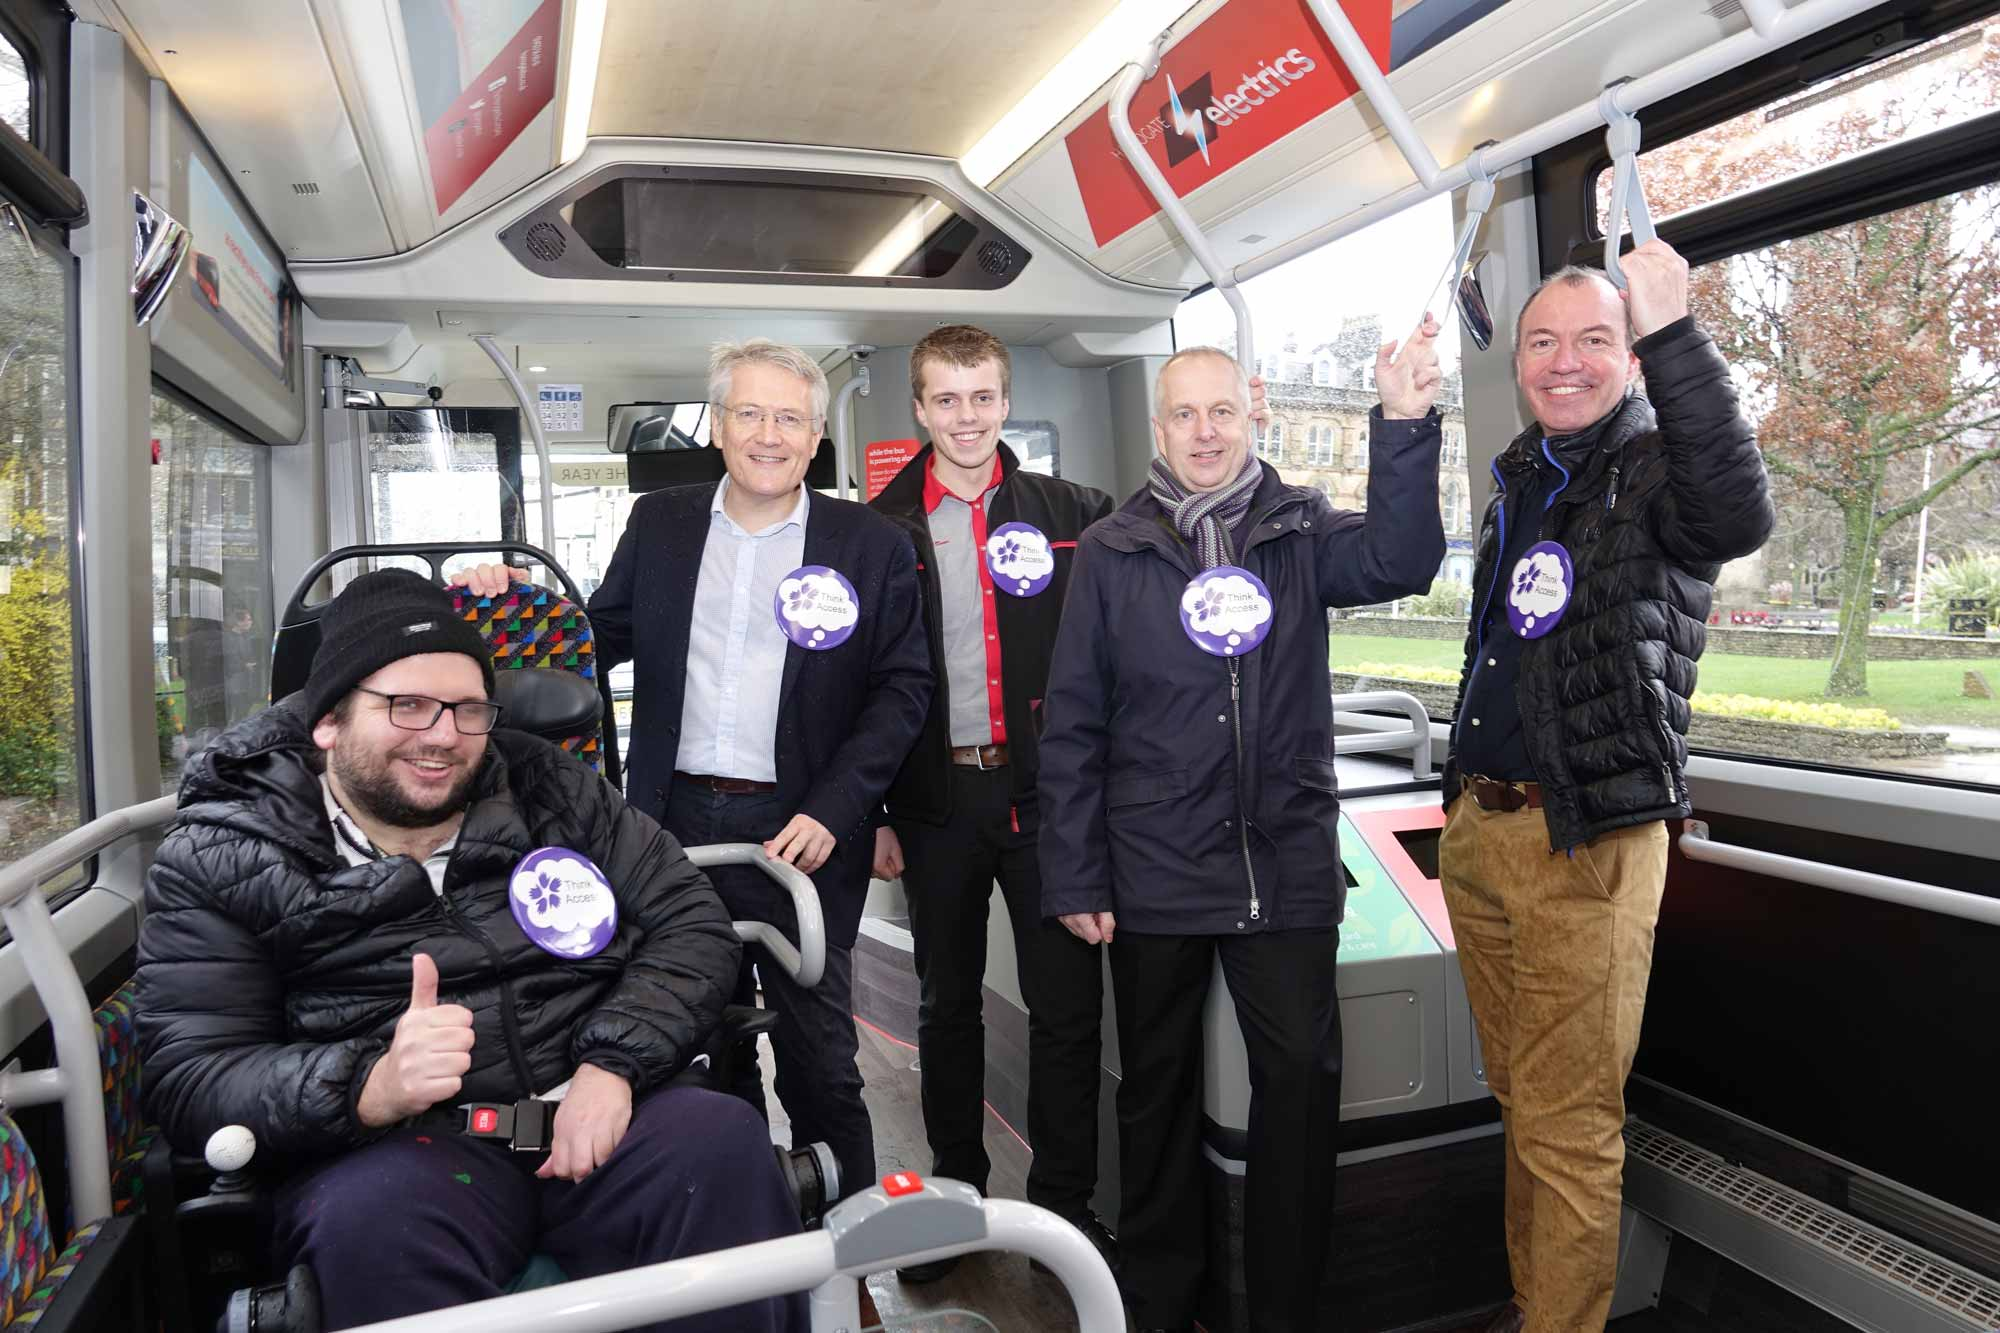 Disability Action Yorkshire customer Darren Asquith, MP Andrew Jones, Transdev service delivery manager Andy Turnbull, Disability Action Yorkshire chairman Neil Revely and Harrogate Borough Council leader Richard Cooper